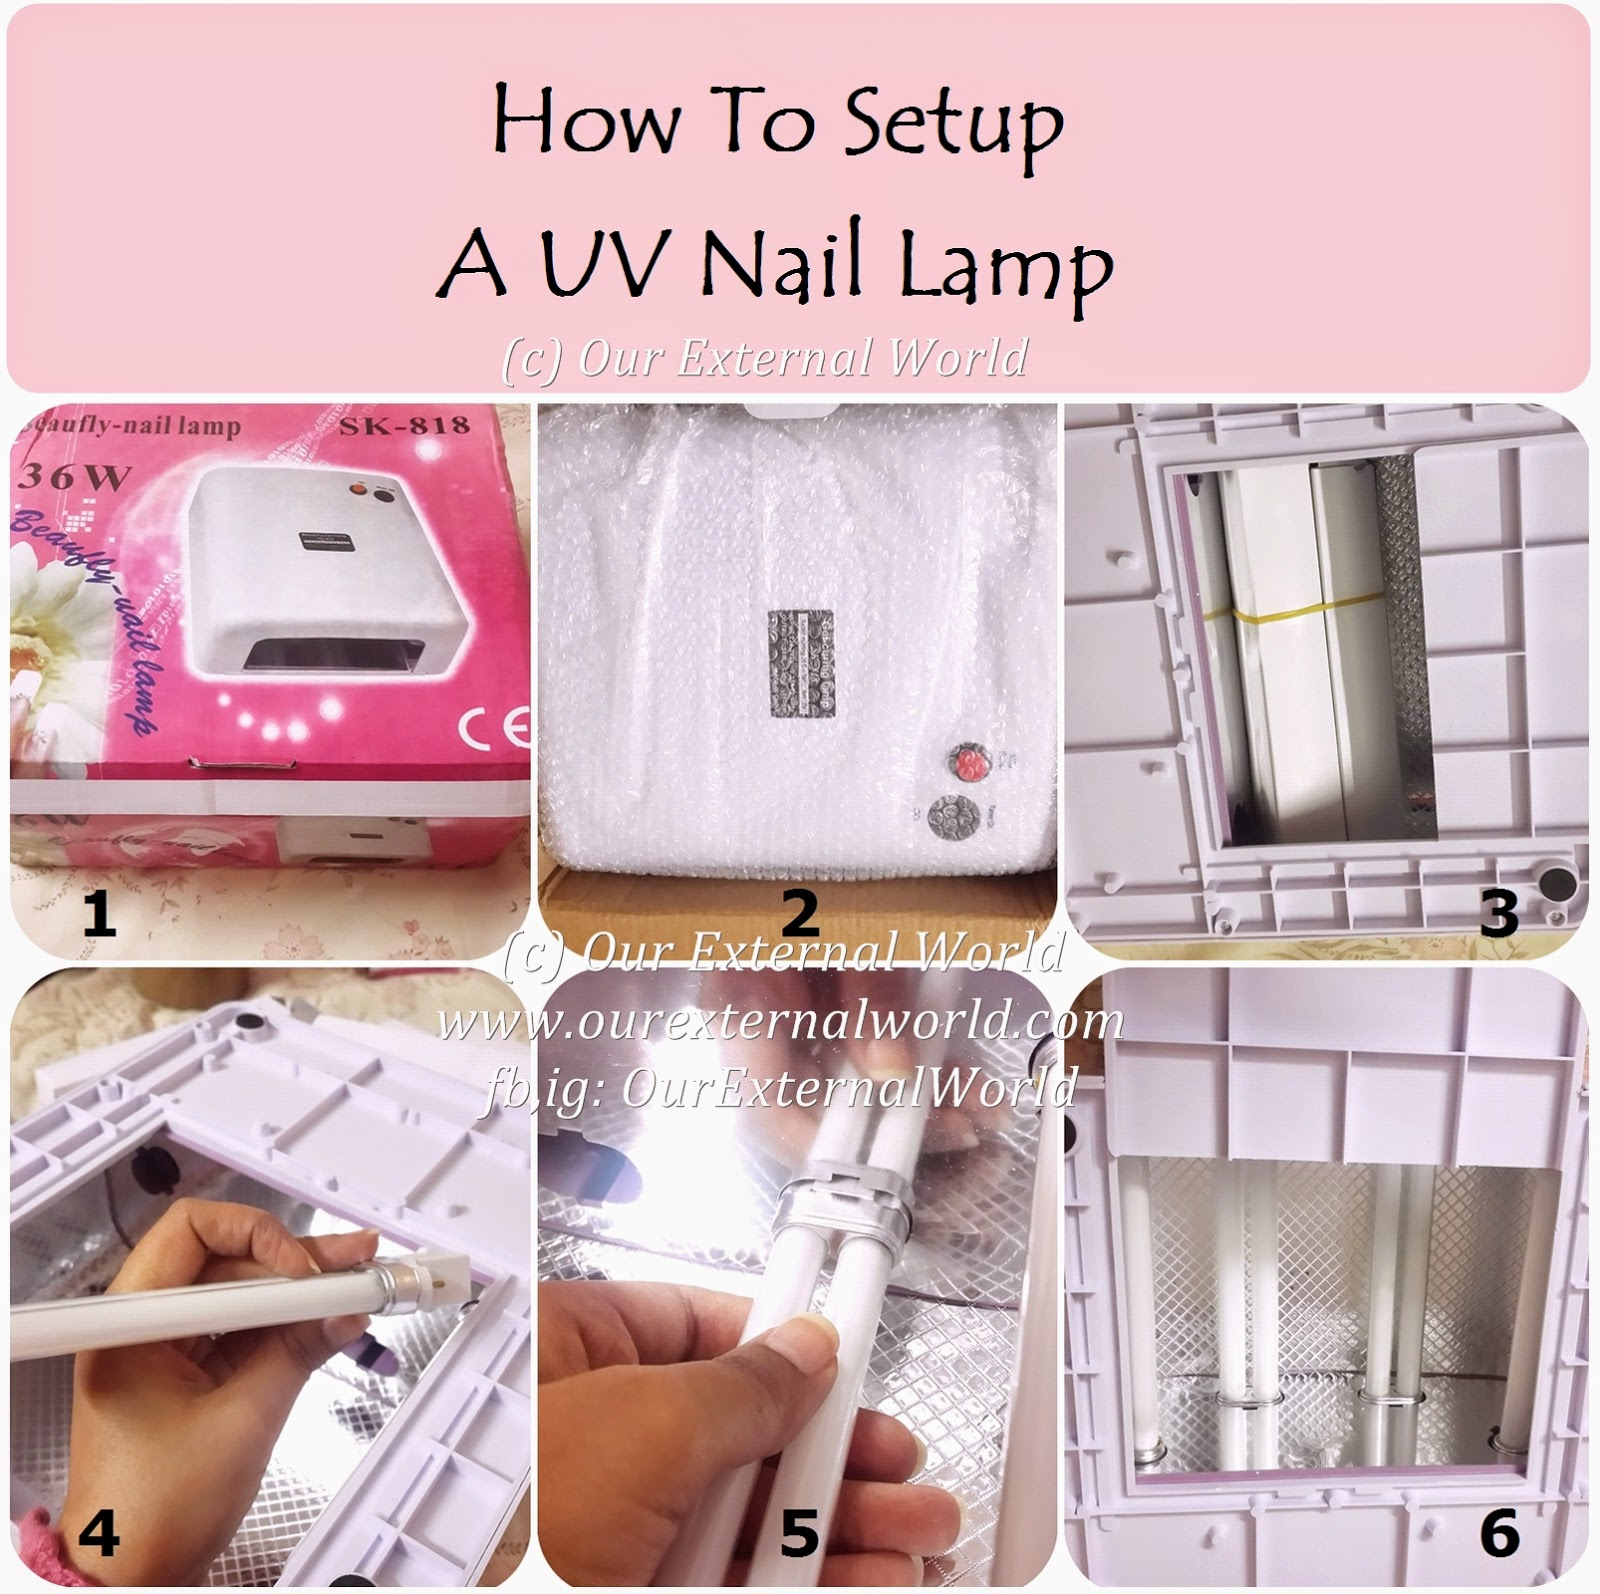 How To Setup A UV Nail Lamp For Gel Manicure, tutorial